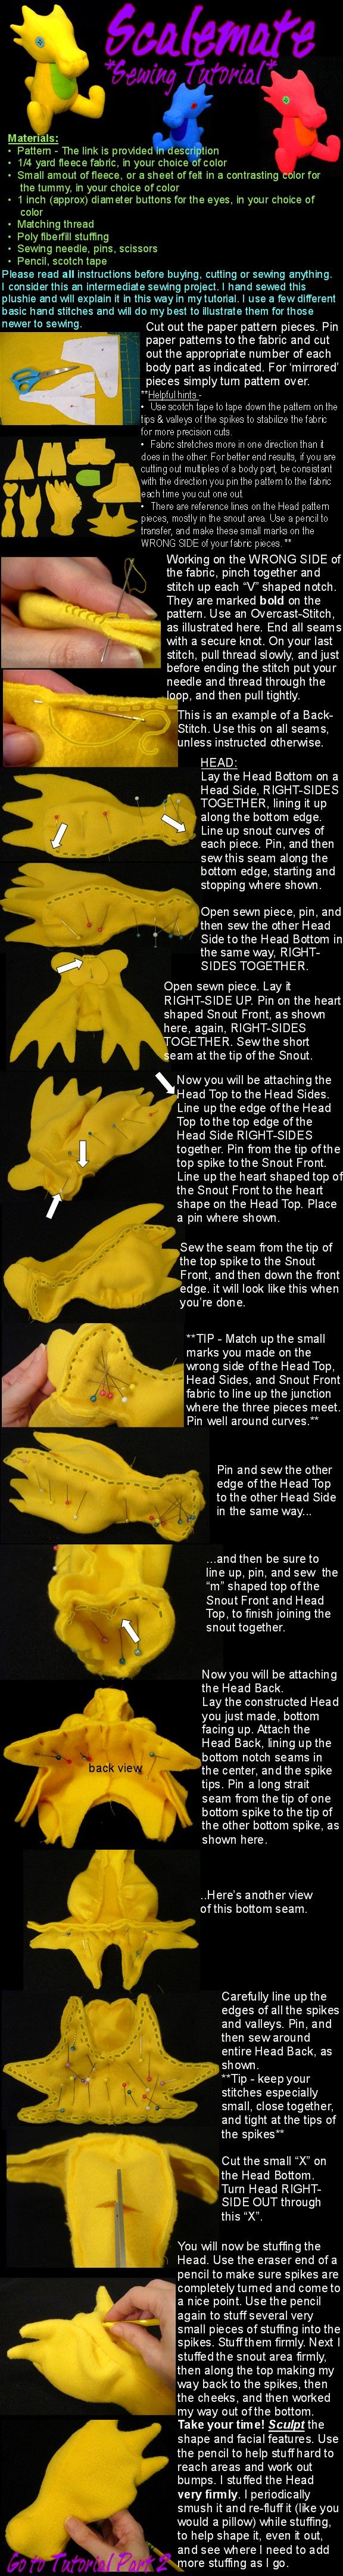 A tutorial for scalemates from Homestuck. A definite project for the future. #Cosplay